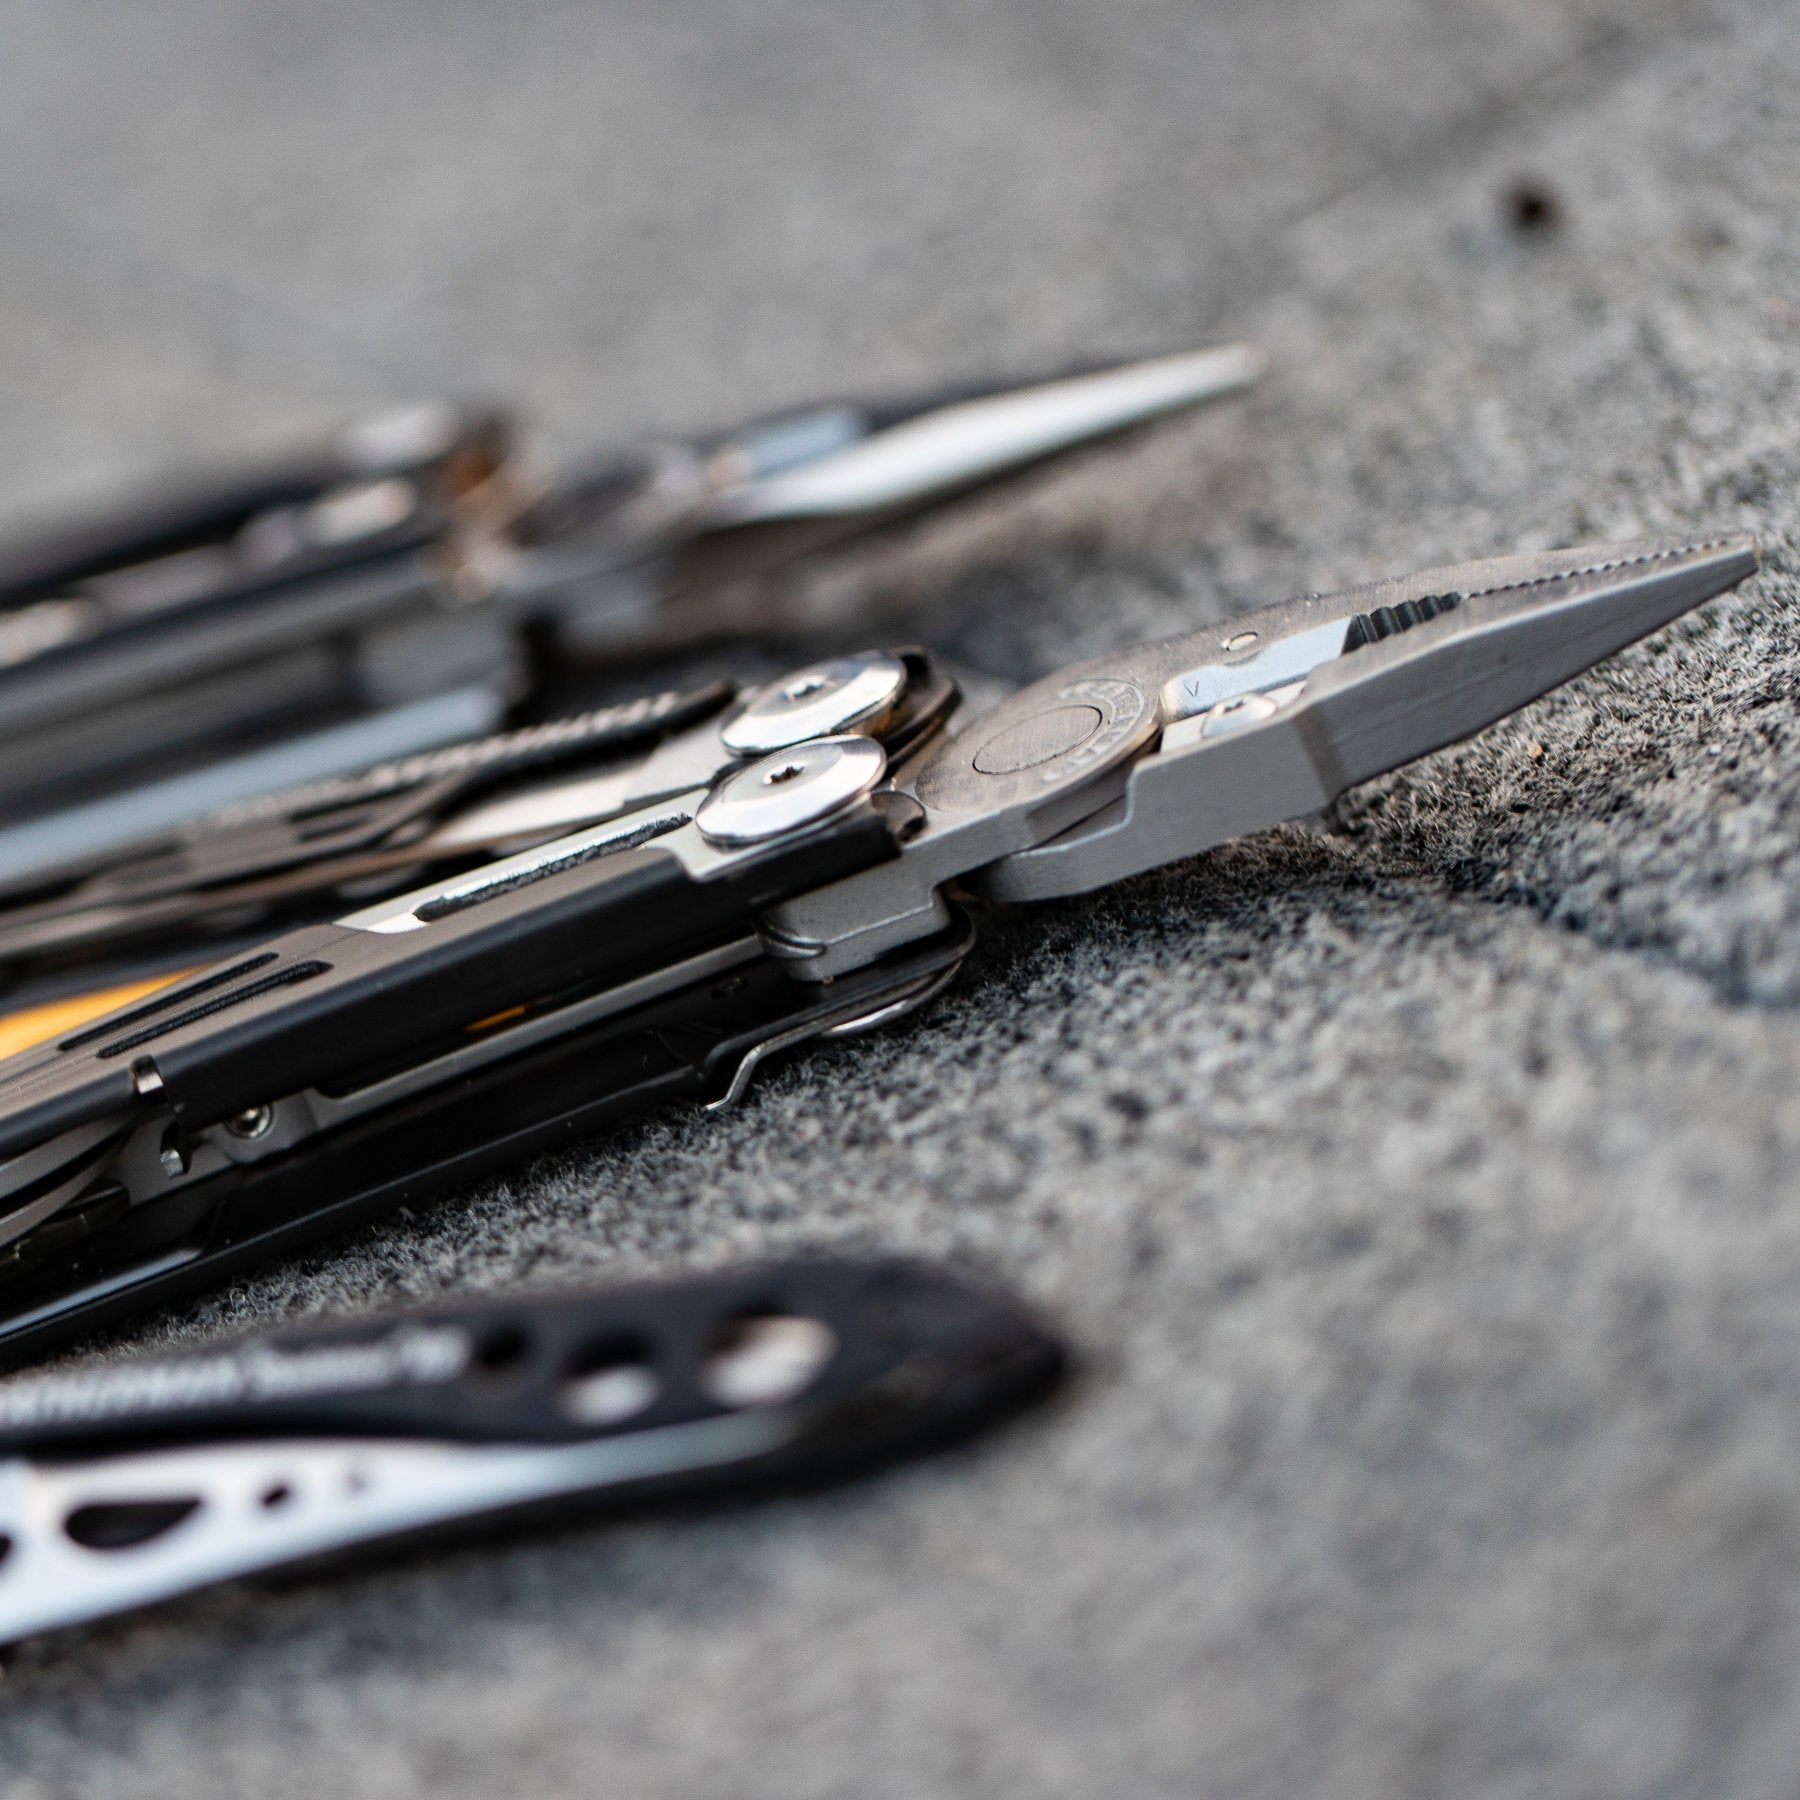 Shop Leatherman Tools by Size at Swiss Knife Shop